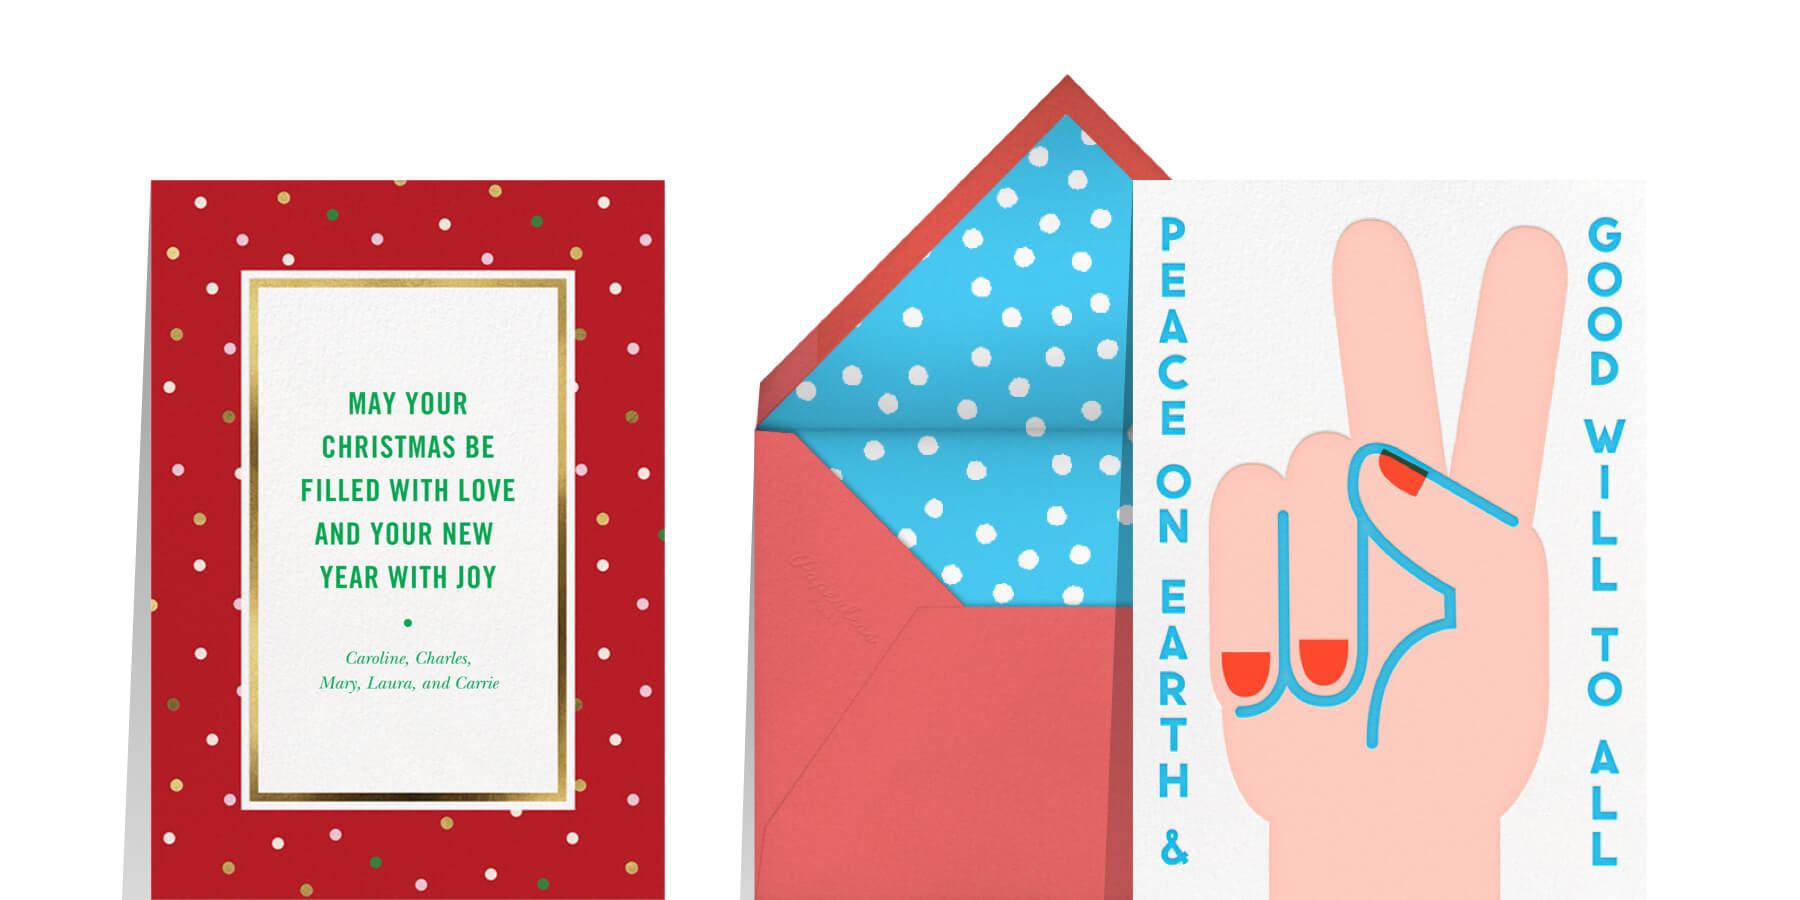 inspirational sayings for Christmas card wording featuring greeting cards that read peace on earth and may your Christmas be filled with love